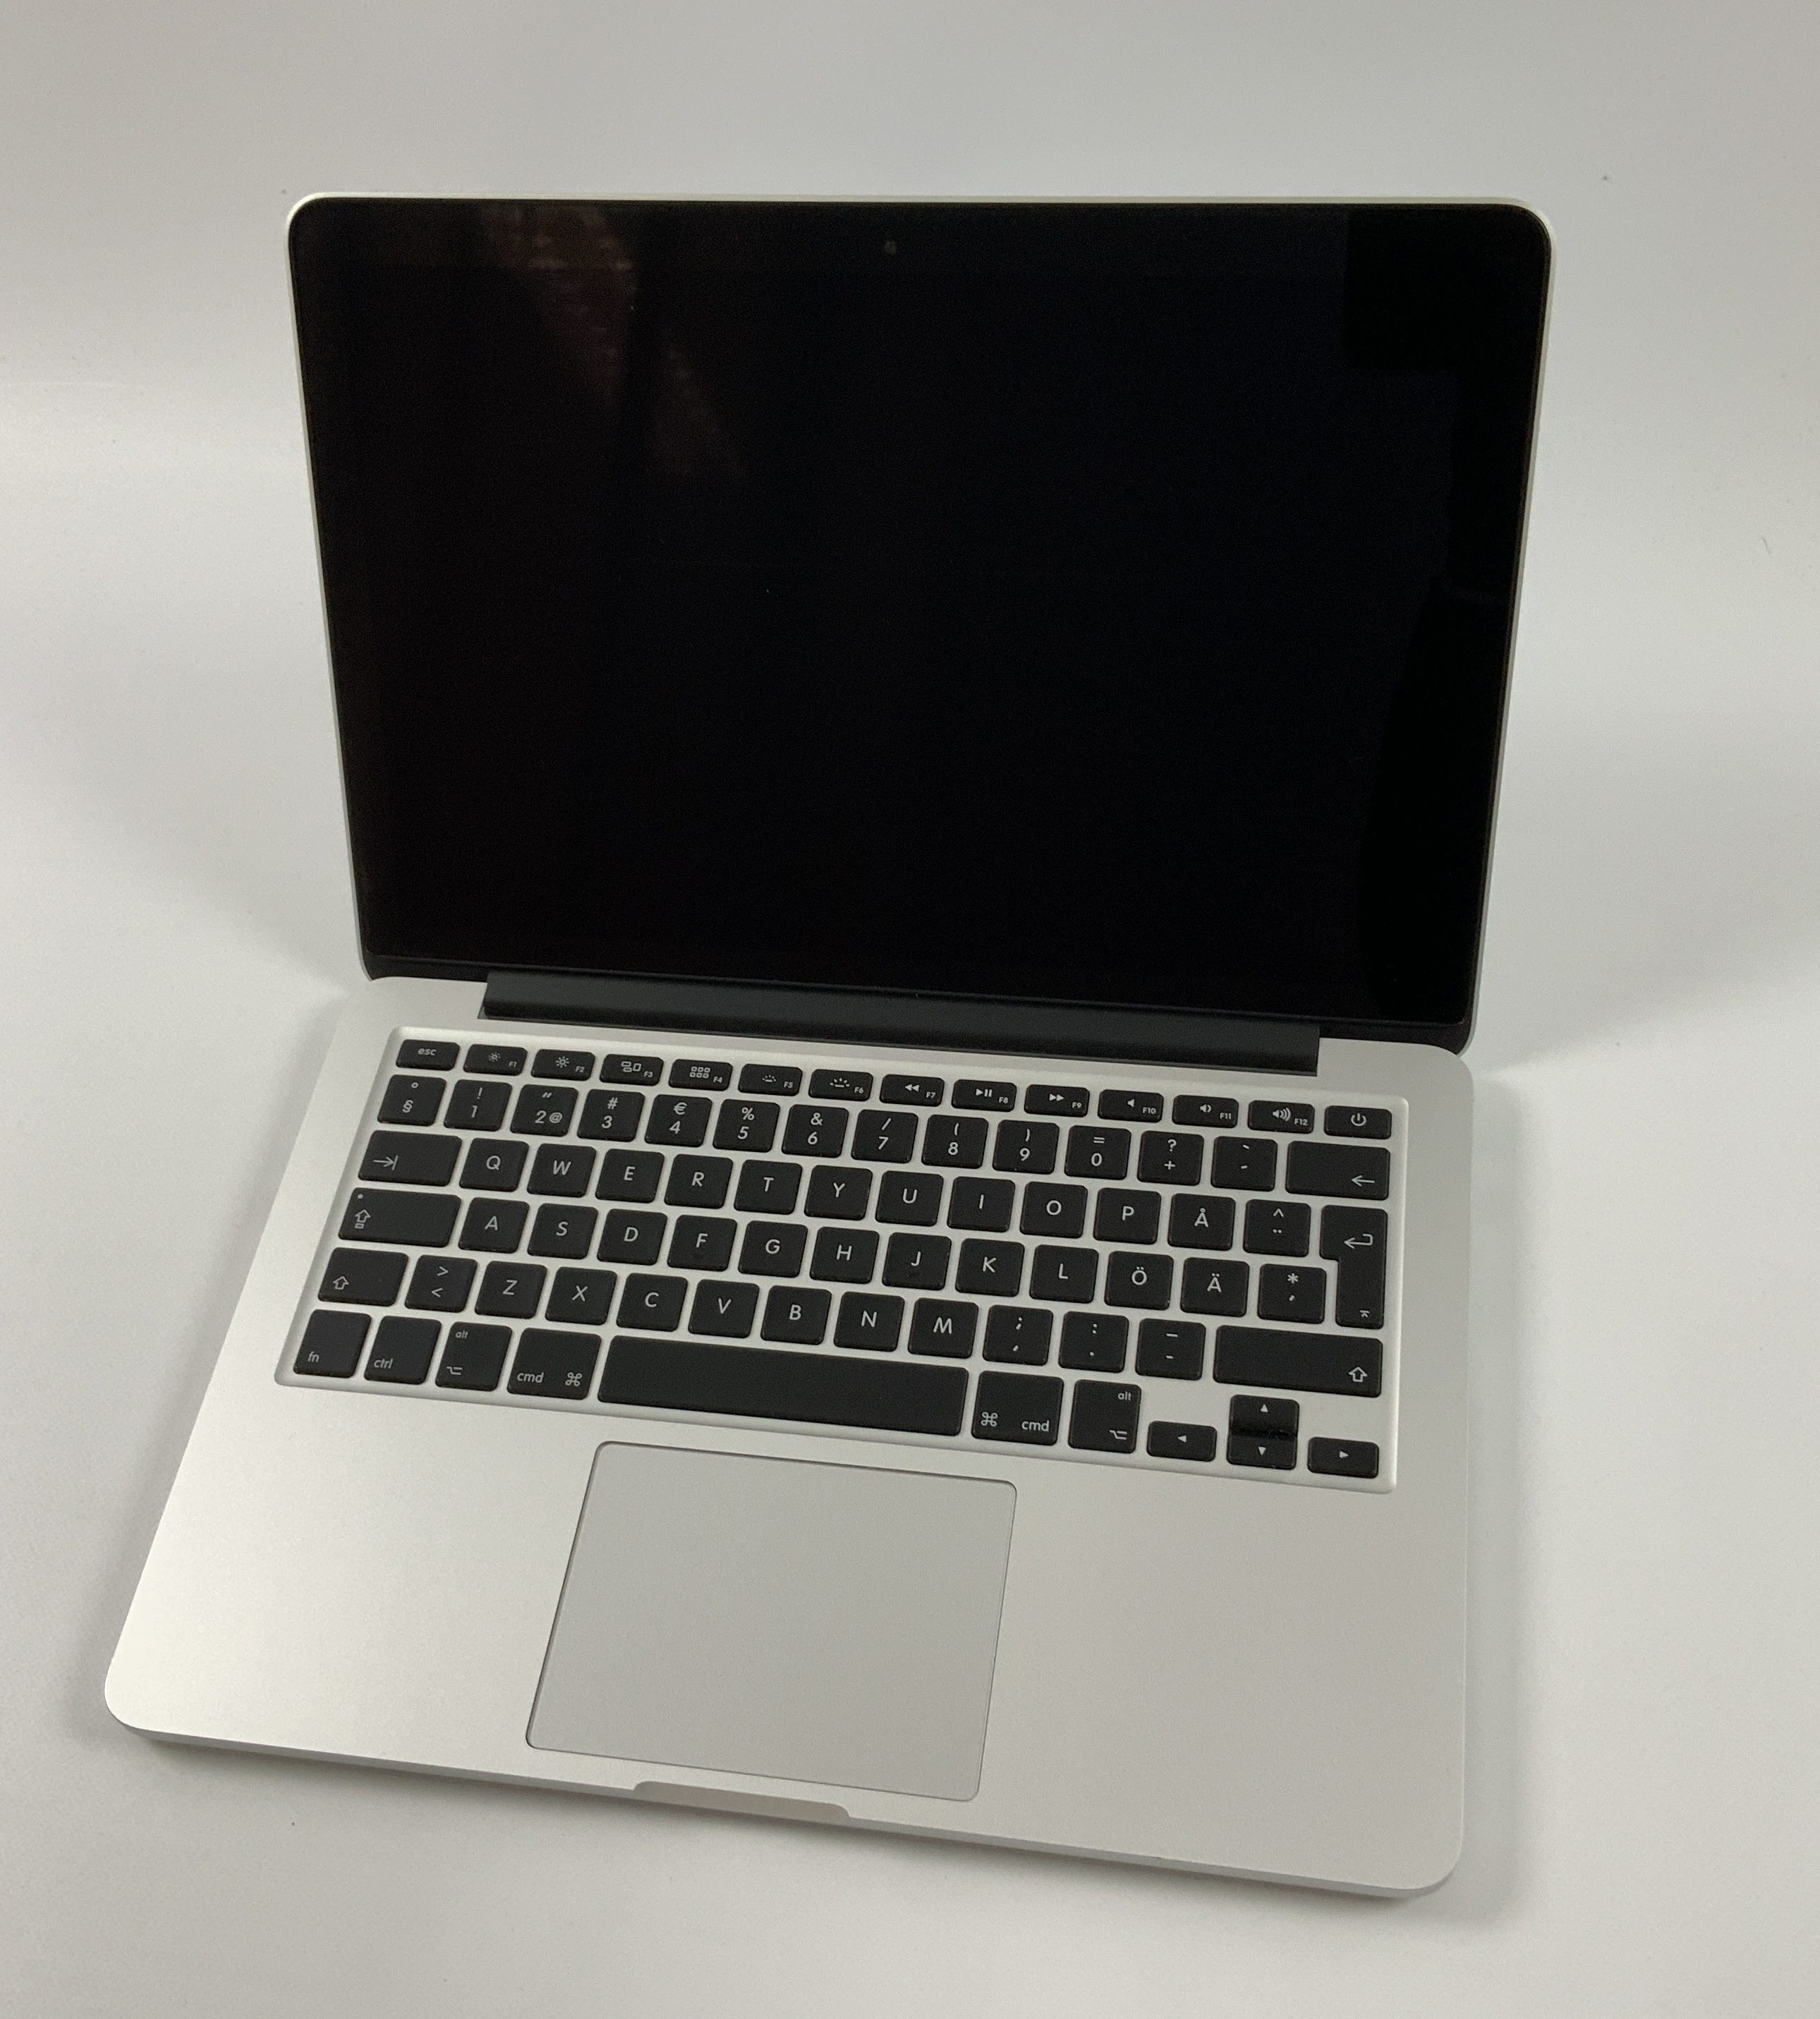 "MacBook Pro Retina 13"" Early 2015 (Intel Core i5 2.7 GHz 8 GB RAM 128 GB SSD), Intel Core i5 2.7 GHz, 8 GB RAM, 128 GB SSD, imagen 1"